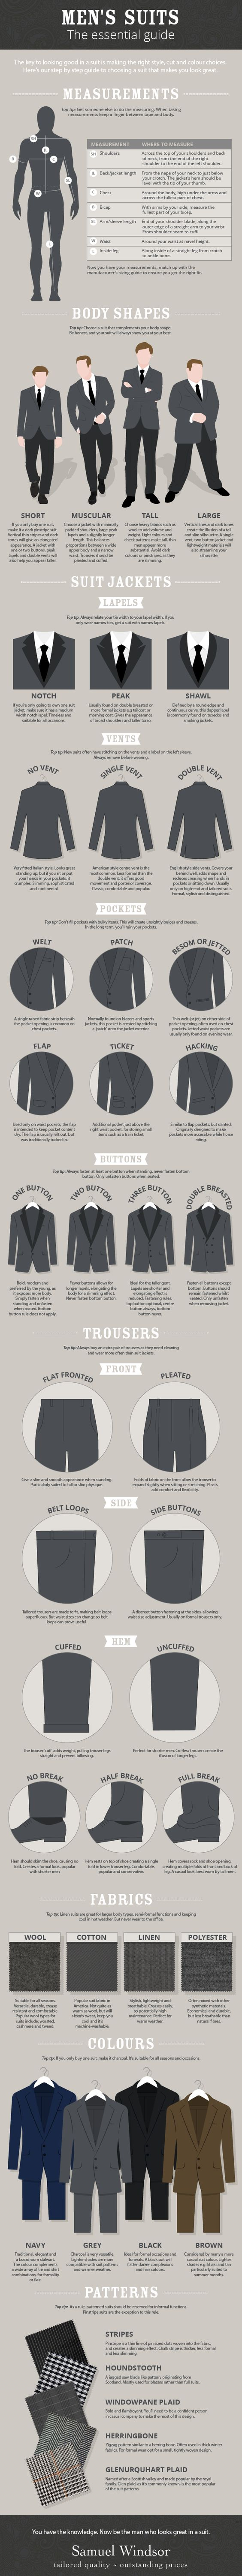 Buying a new suit? Confused by all the different choices? Read out the essential infographic guide from Samuel Windsor to ensure you make the right decisions. If you're not sure whether you want a full break or half break, or whether you should choose a flaps or welts for your pockets, this guide will help.